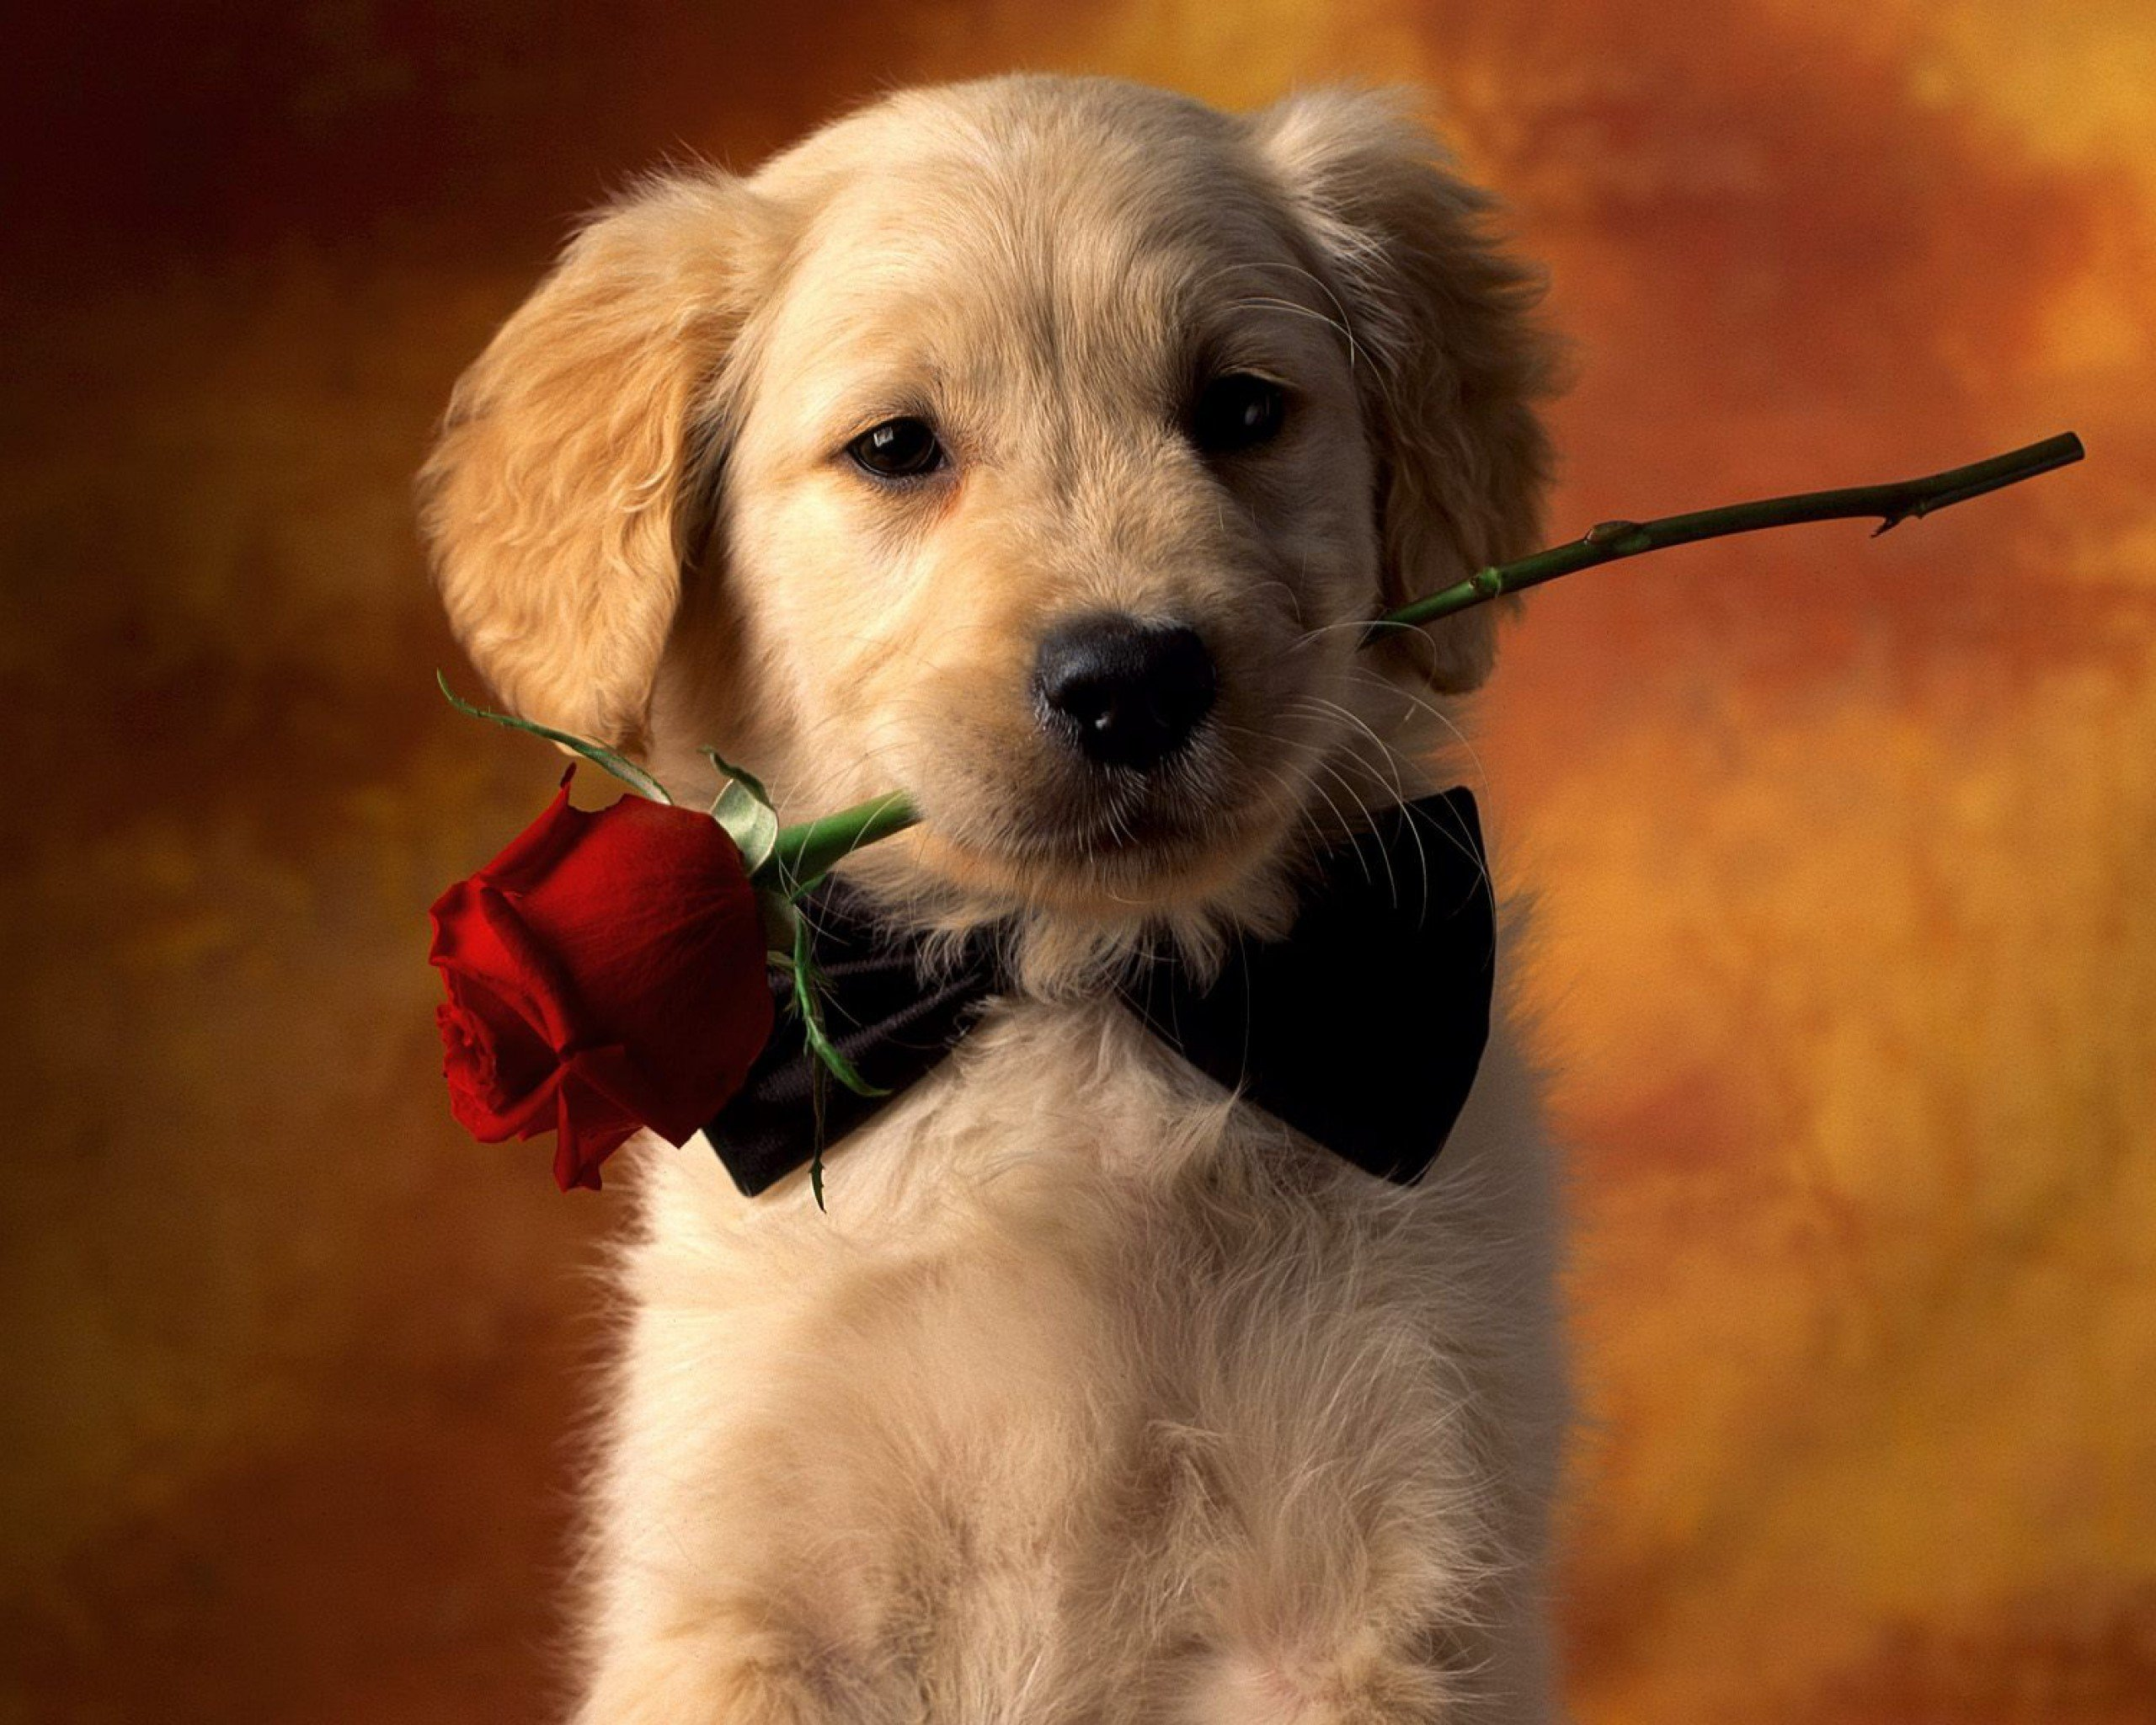 Free Download 50 Cute Dogs Wallpapers Dog Puppy Desktop Wallpapers 2560x2048 For Your Desktop Mobile Tablet Explore 78 Free Dog Desktop Wallpaper Cute Dog Desktop Wallpaper Free Free Desktop